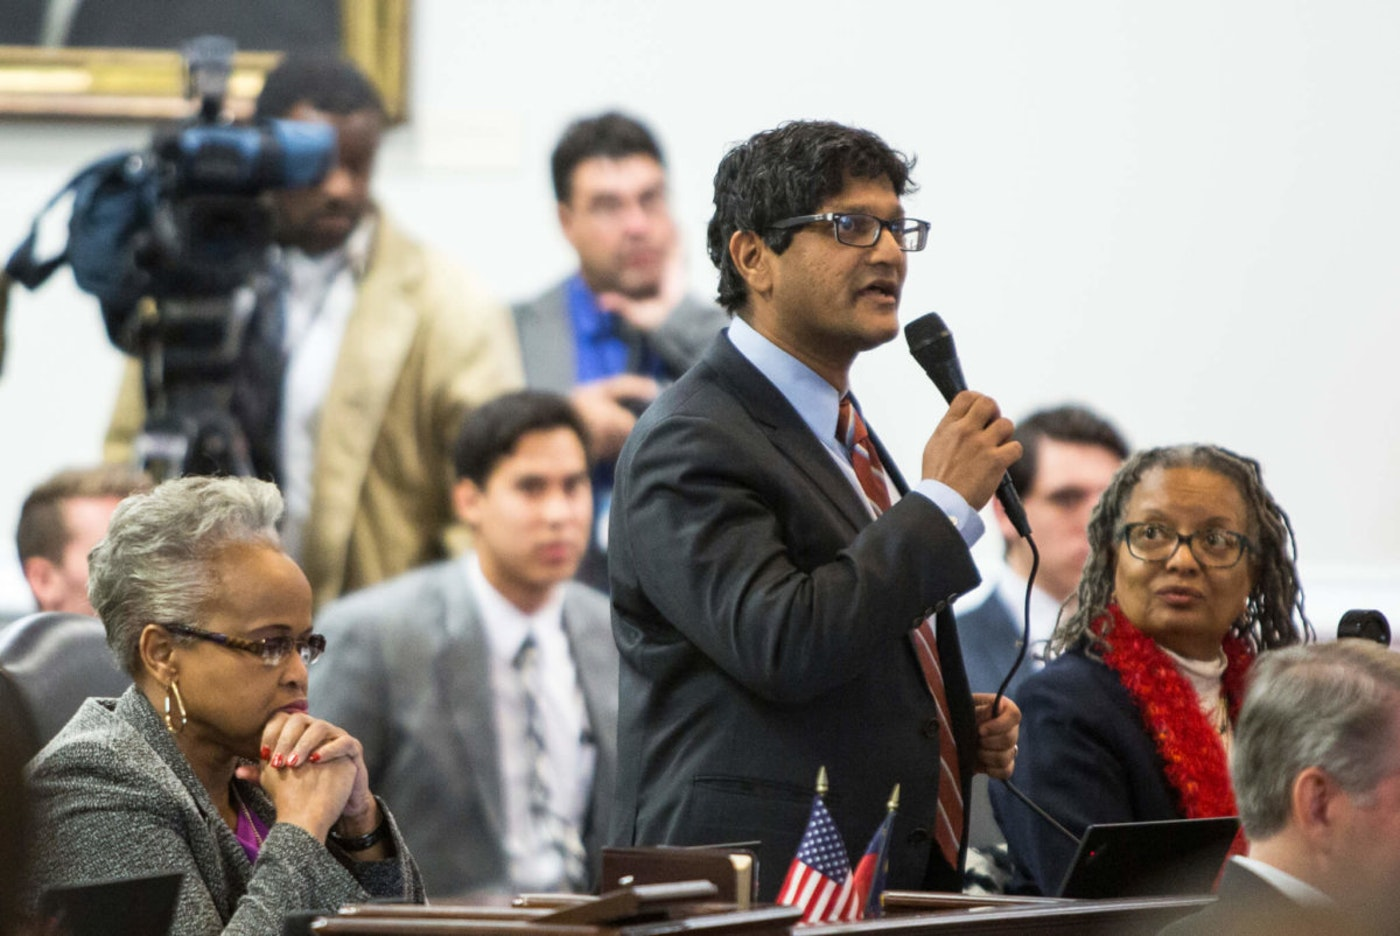 In this Dec. 21, 2016 file photo, State Sen. Jay Chaudhuri, D-Wake, speaks on the NC Senate floor. Chaudhuri is one of several Democrats who sponsored COVID relief bills this week tailored to lower-income and middle-class North Carolina families.  (AP Photo/Ben McKeown, File)